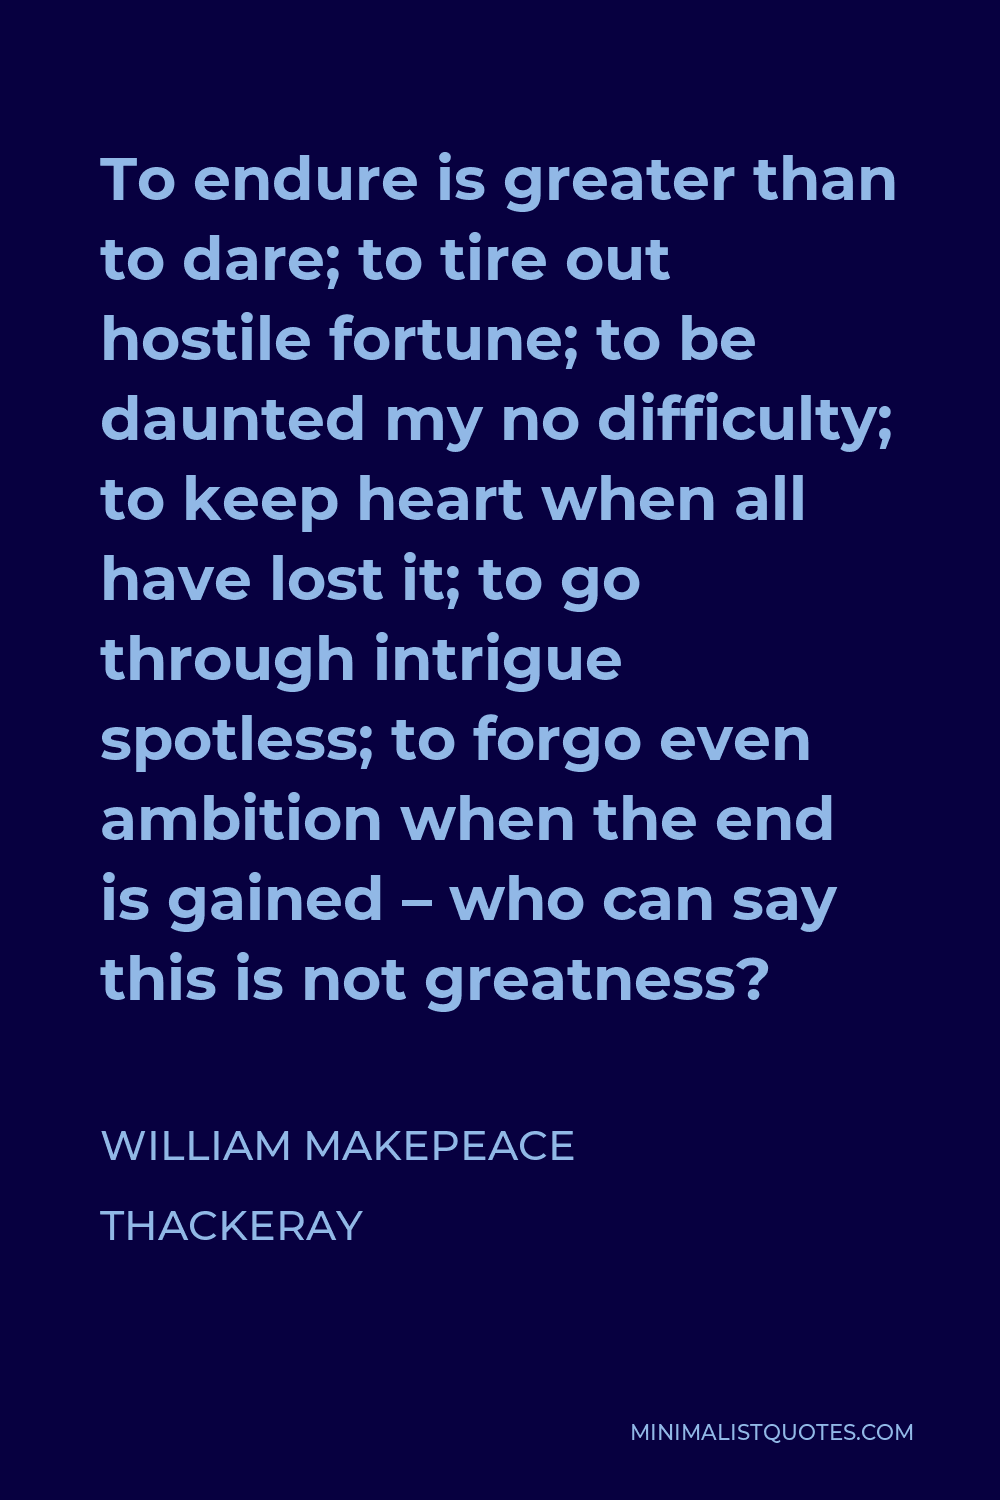 William Makepeace Thackeray Quote - To endure is greater than to dare; to tire out hostile fortune; to be daunted my no difficulty; to keep heart when all have lost it; to go through intrigue spotless; to forgo even ambition when the end is gained – who can say this is not greatness?